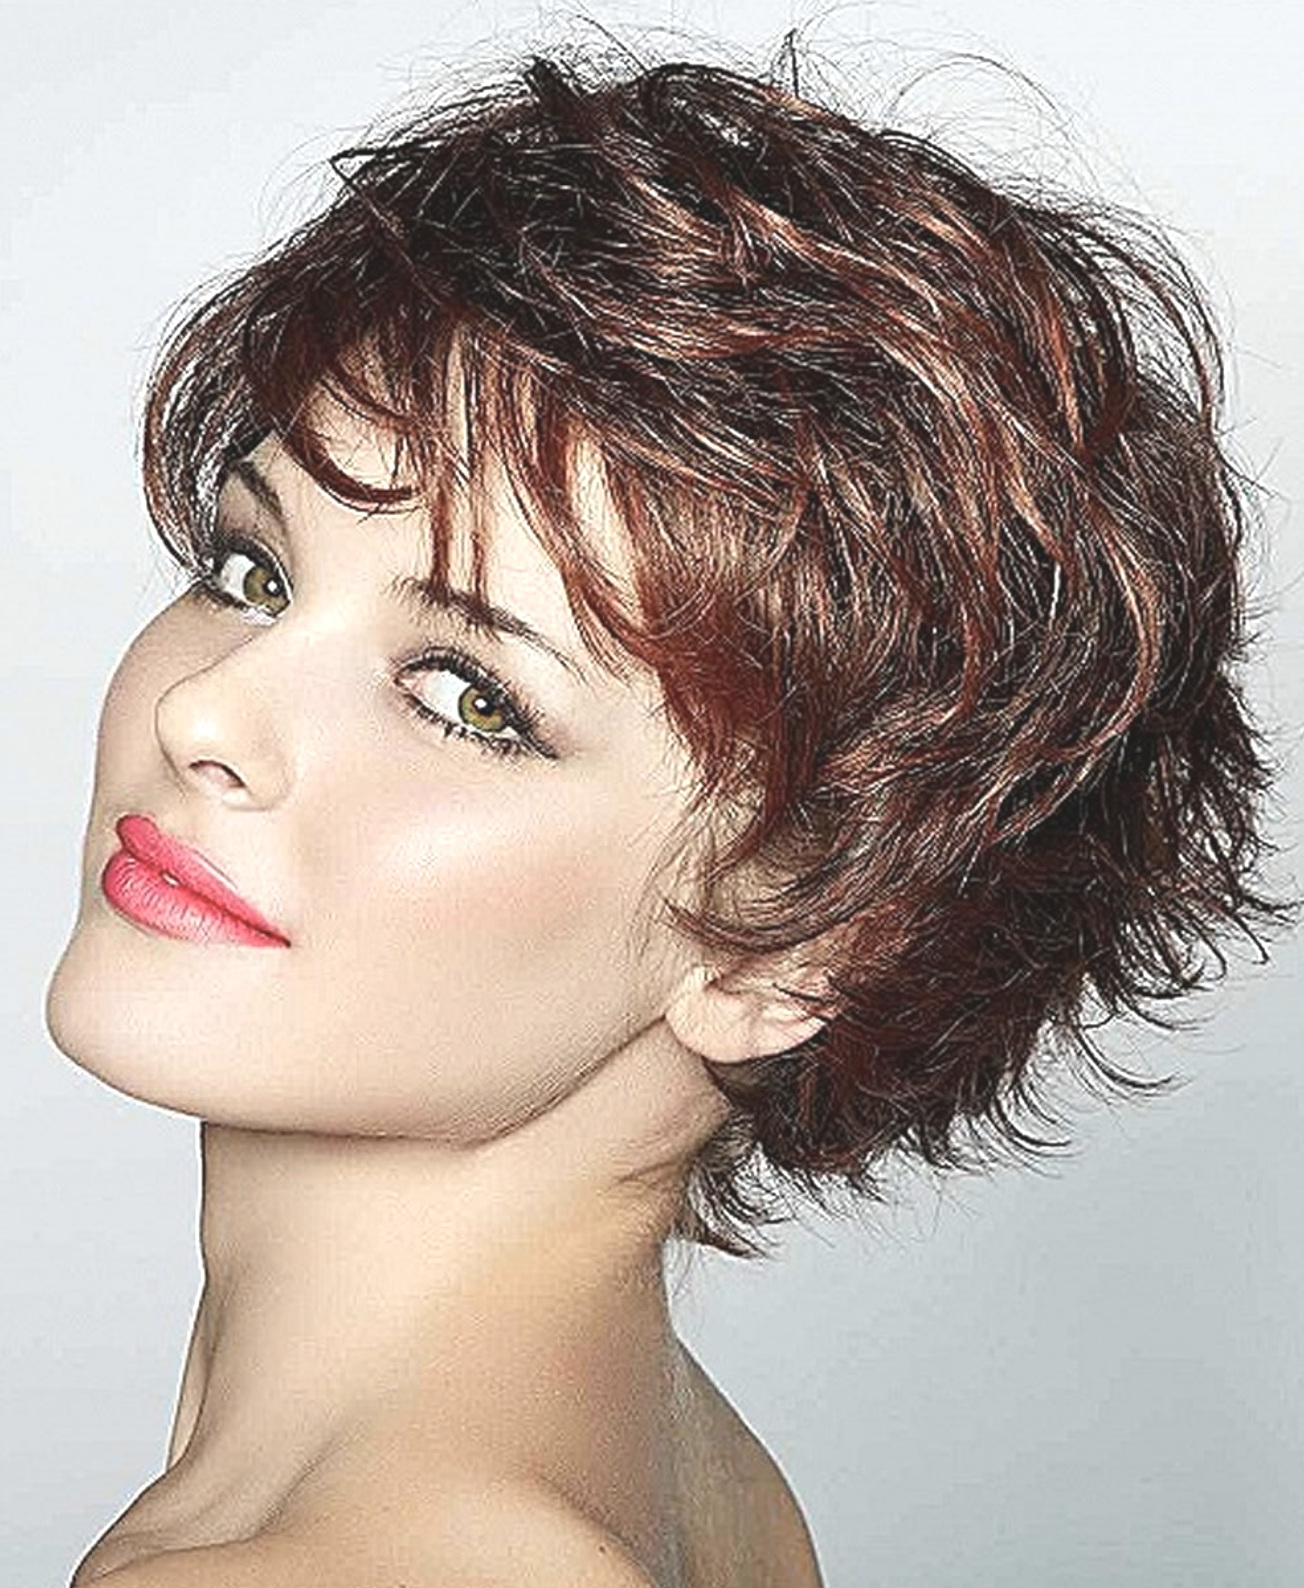 Hairstyles : Curly Short Hairstyles For Women Glamorous Intended For Pixie Haircuts With Tight Curls (View 14 of 20)